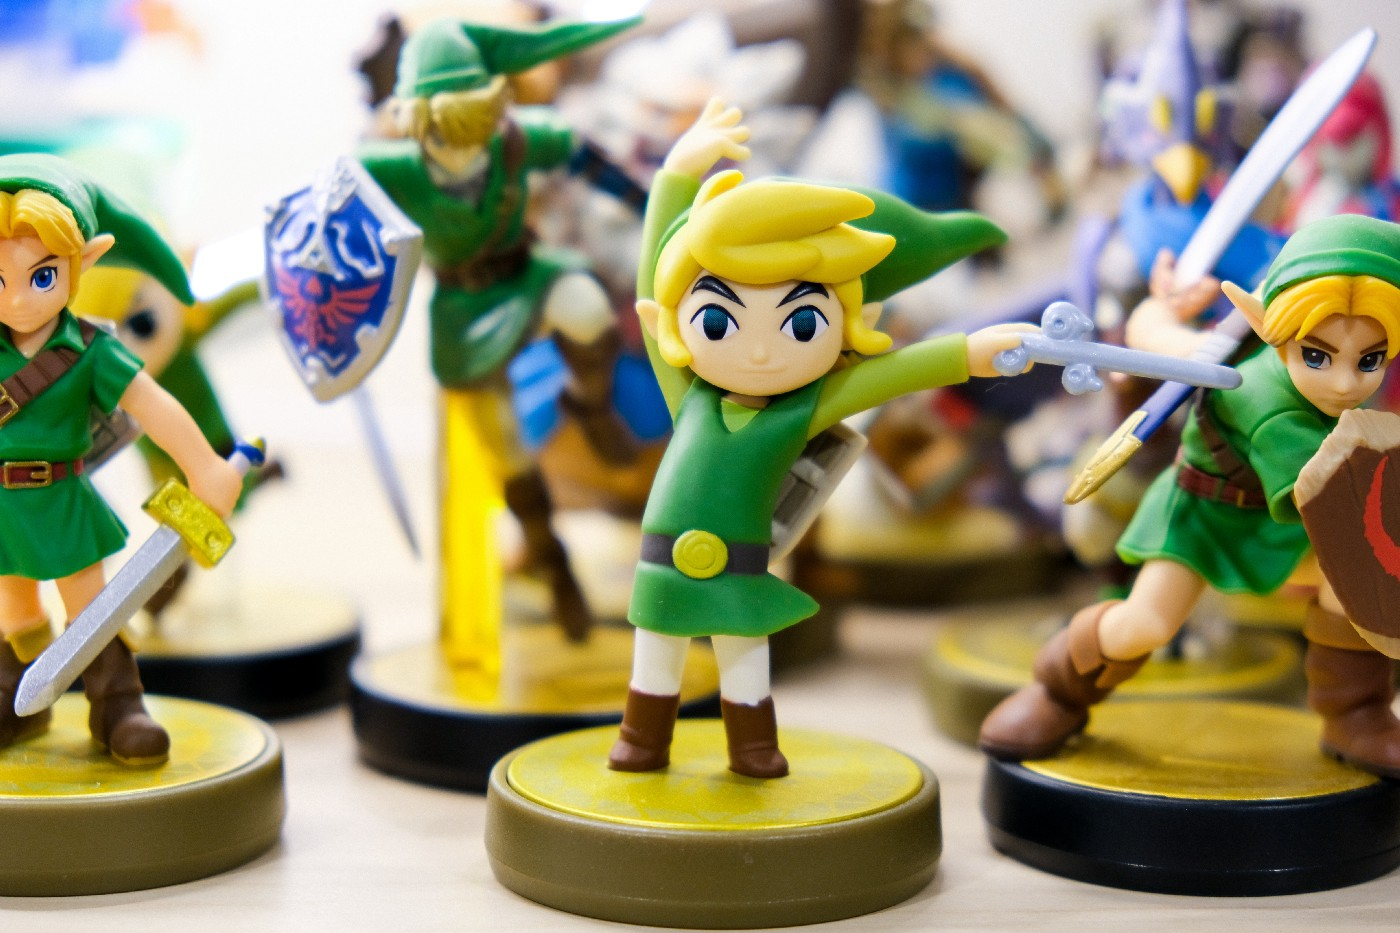 Mini figures of Link from Zelda waving their swords or standing ready to battle.